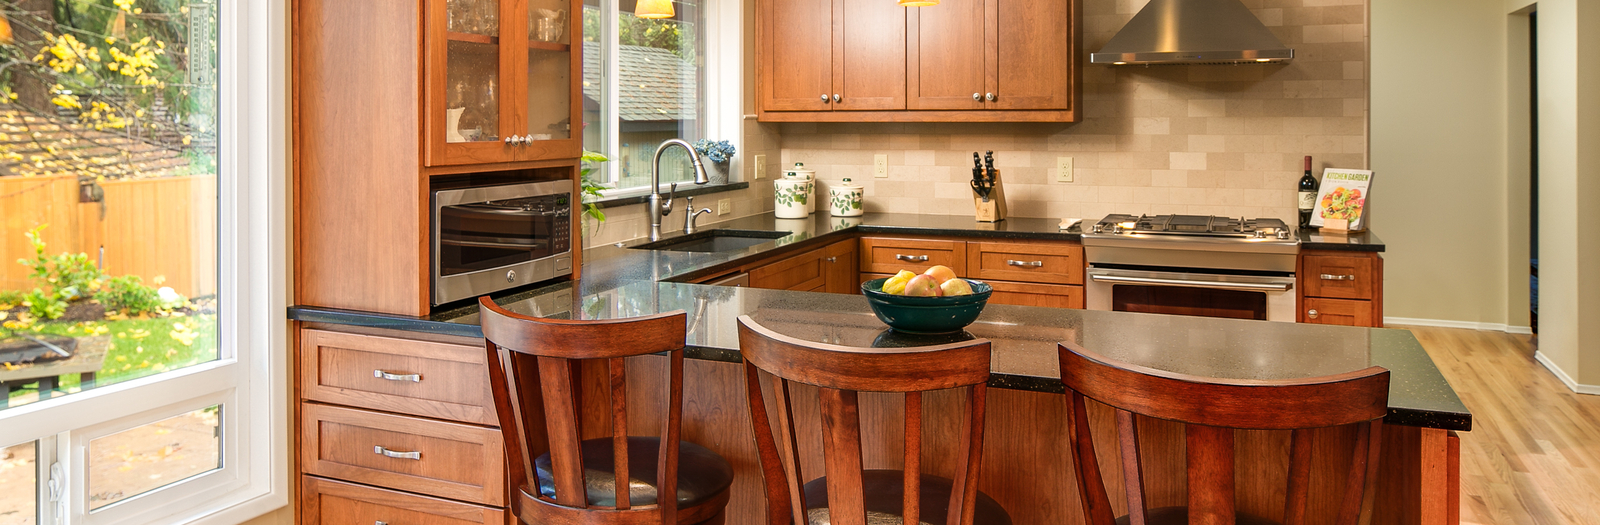 Contemporary Kitchen with shaker style kitchen cabinets